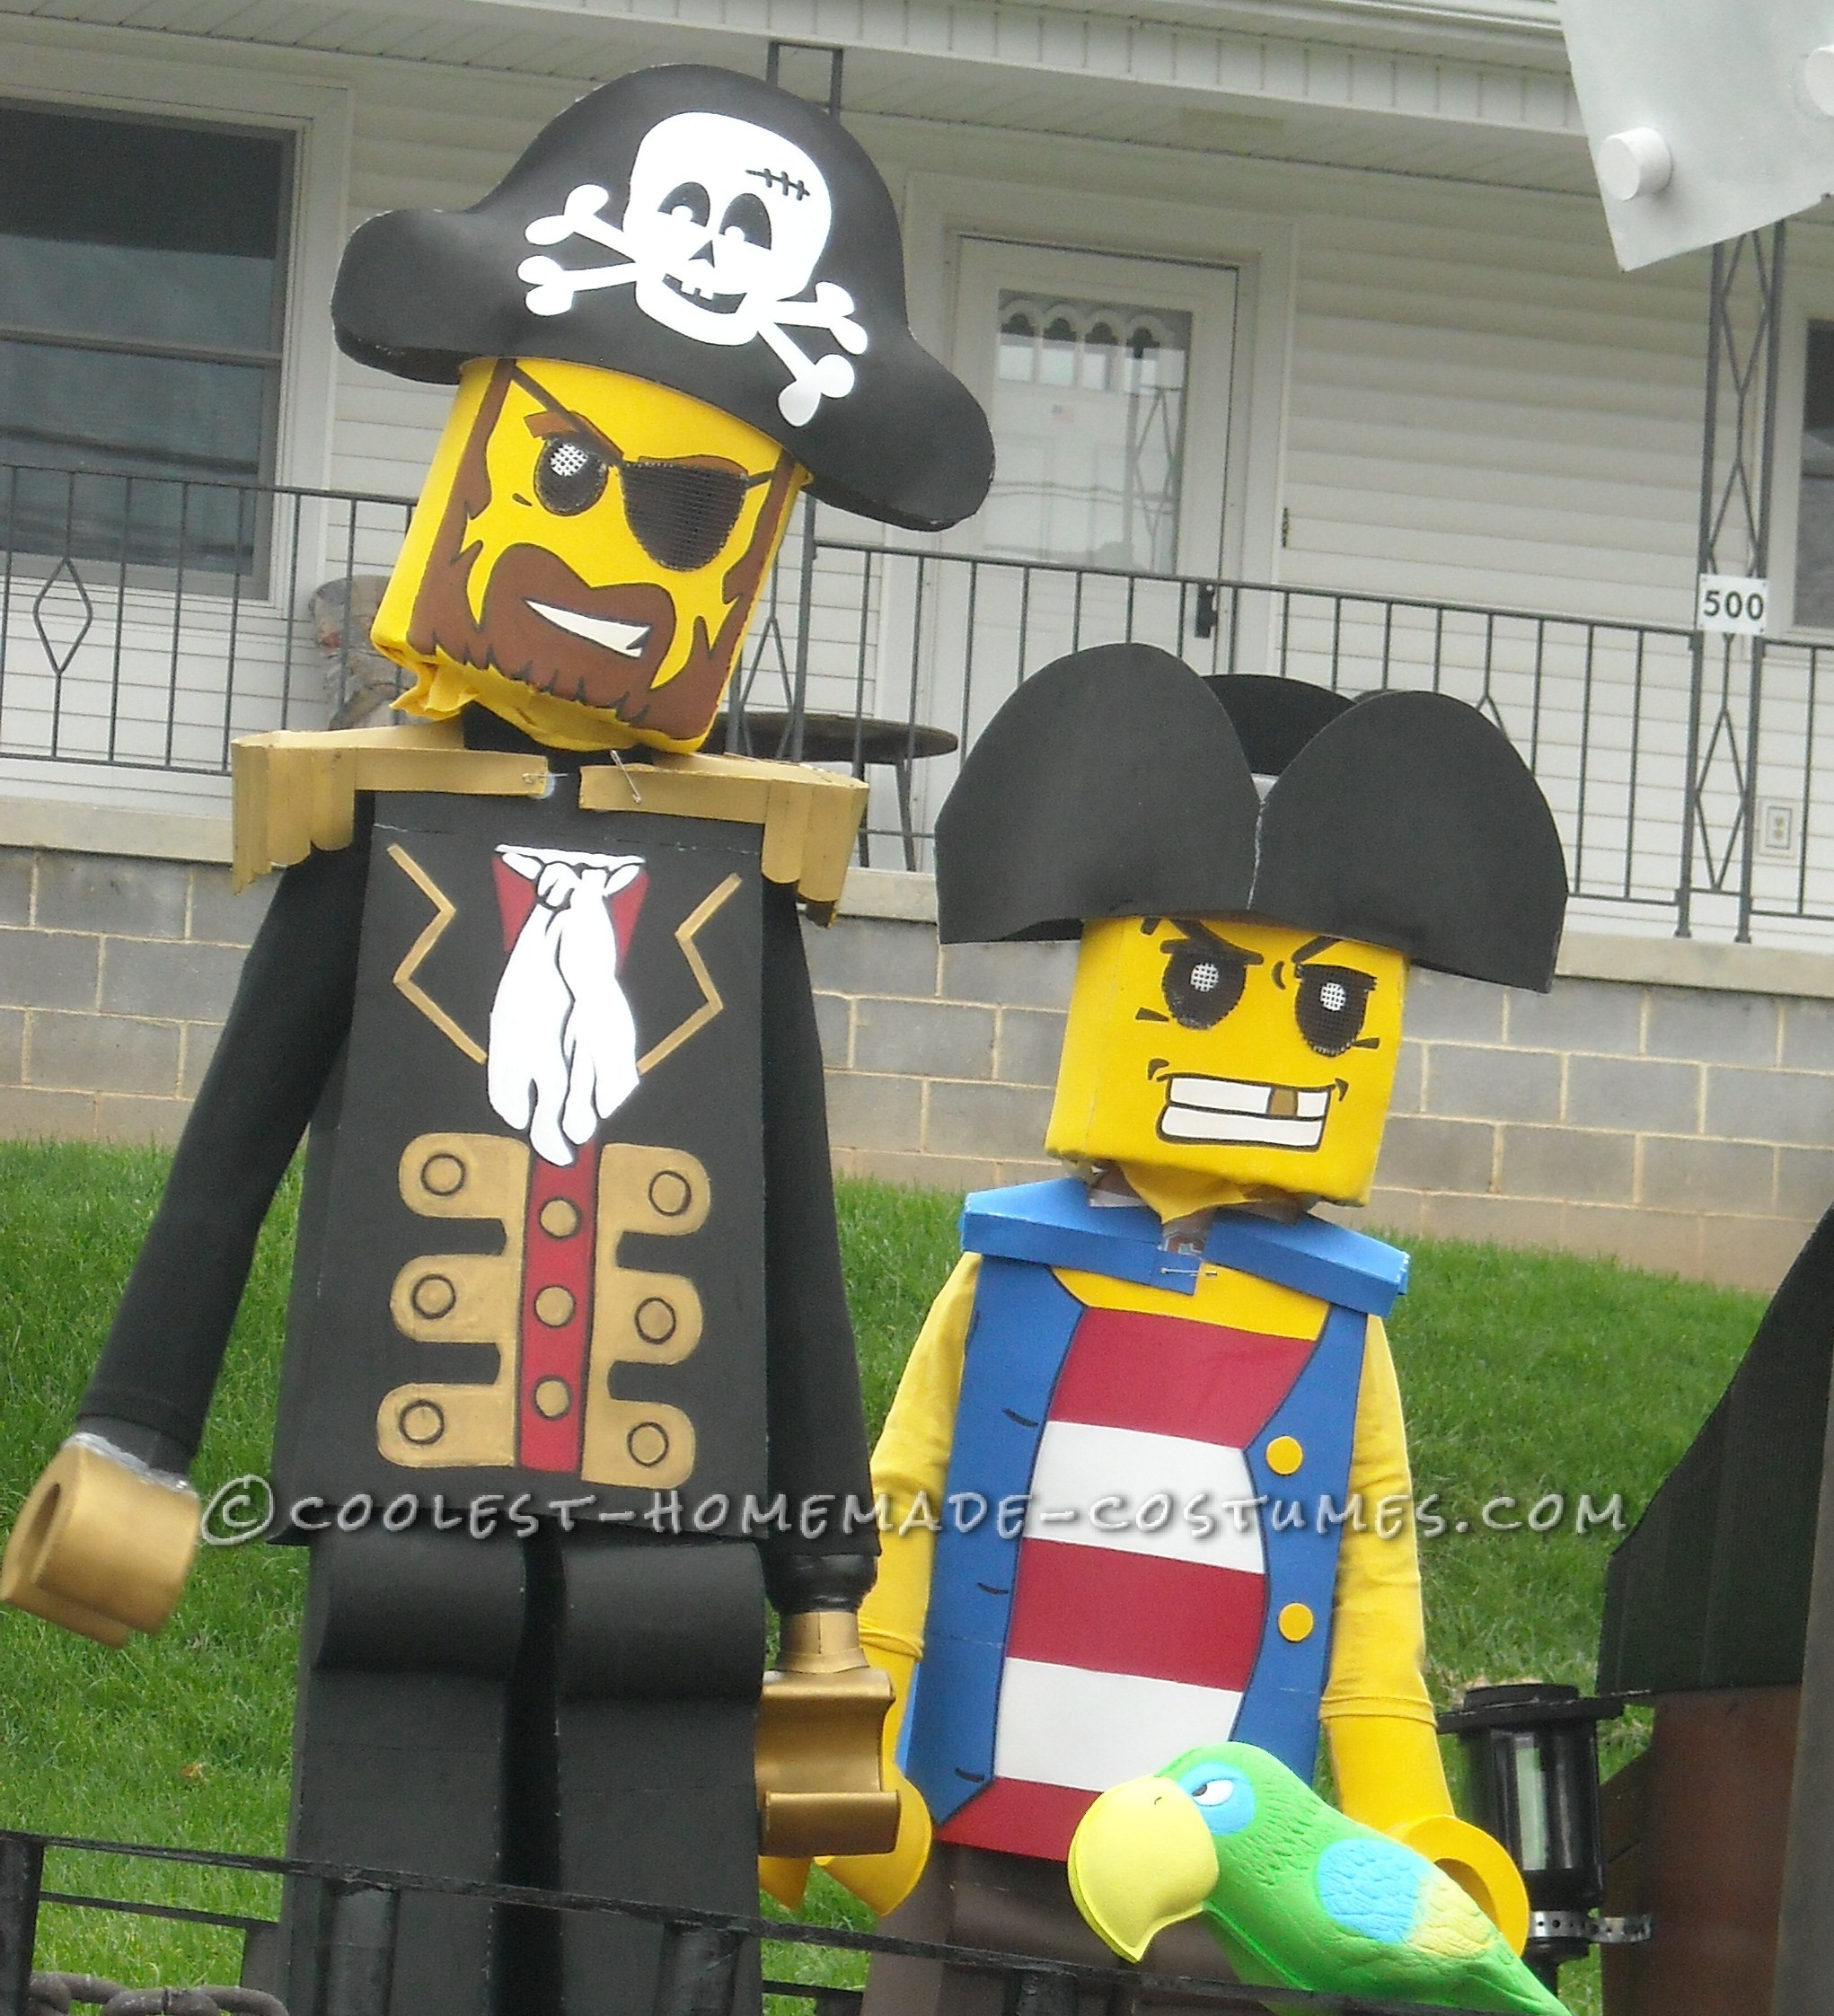 Cool Lego Pirate Costumes - Aargh! The Best and Most Difficult Costumes I've Ever Made